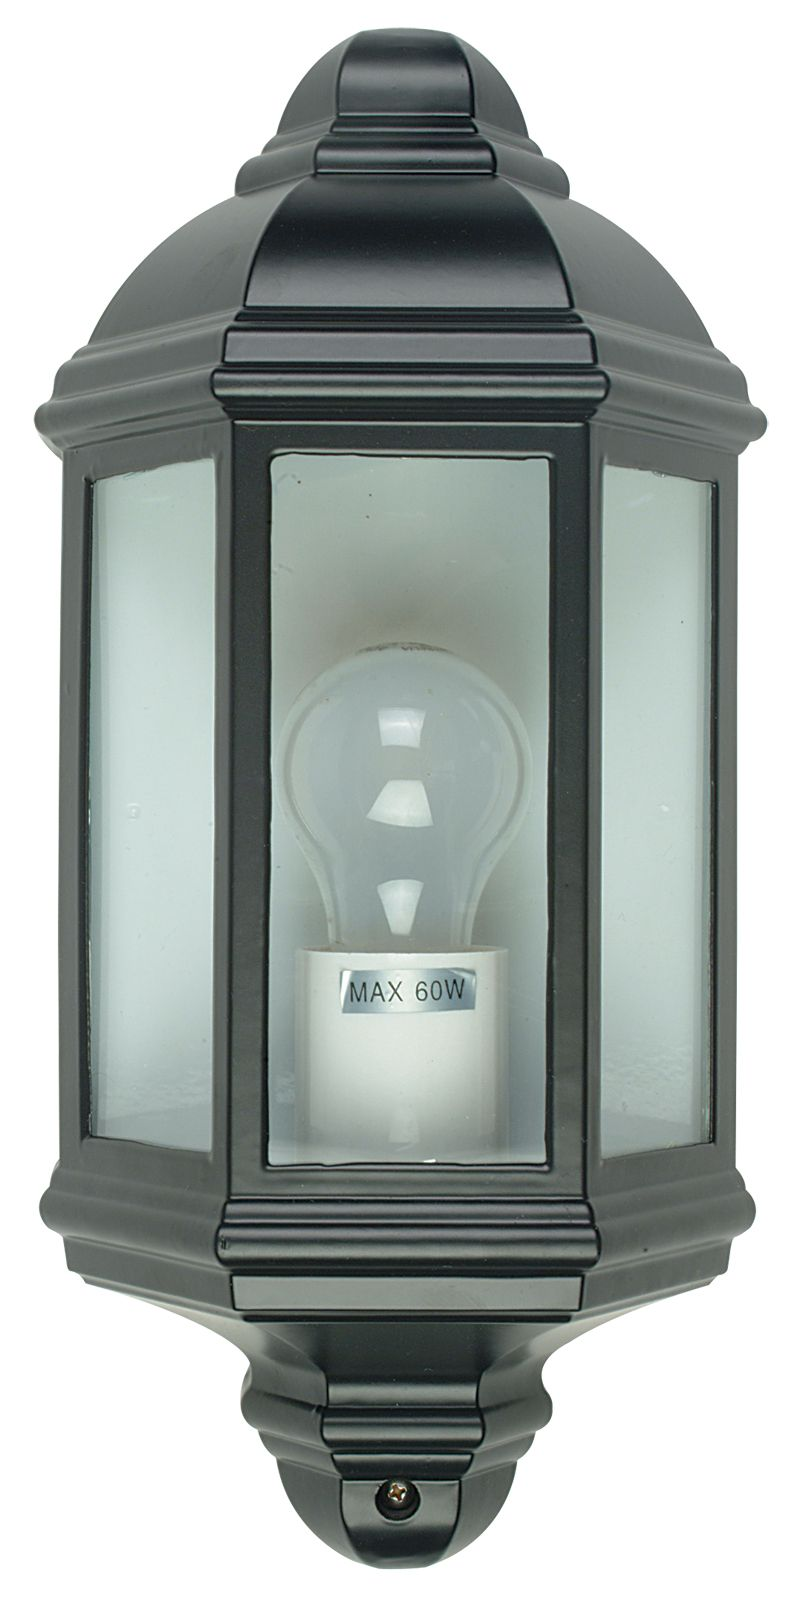 Federation styled flush mounted outdoor wall light the fenchurch